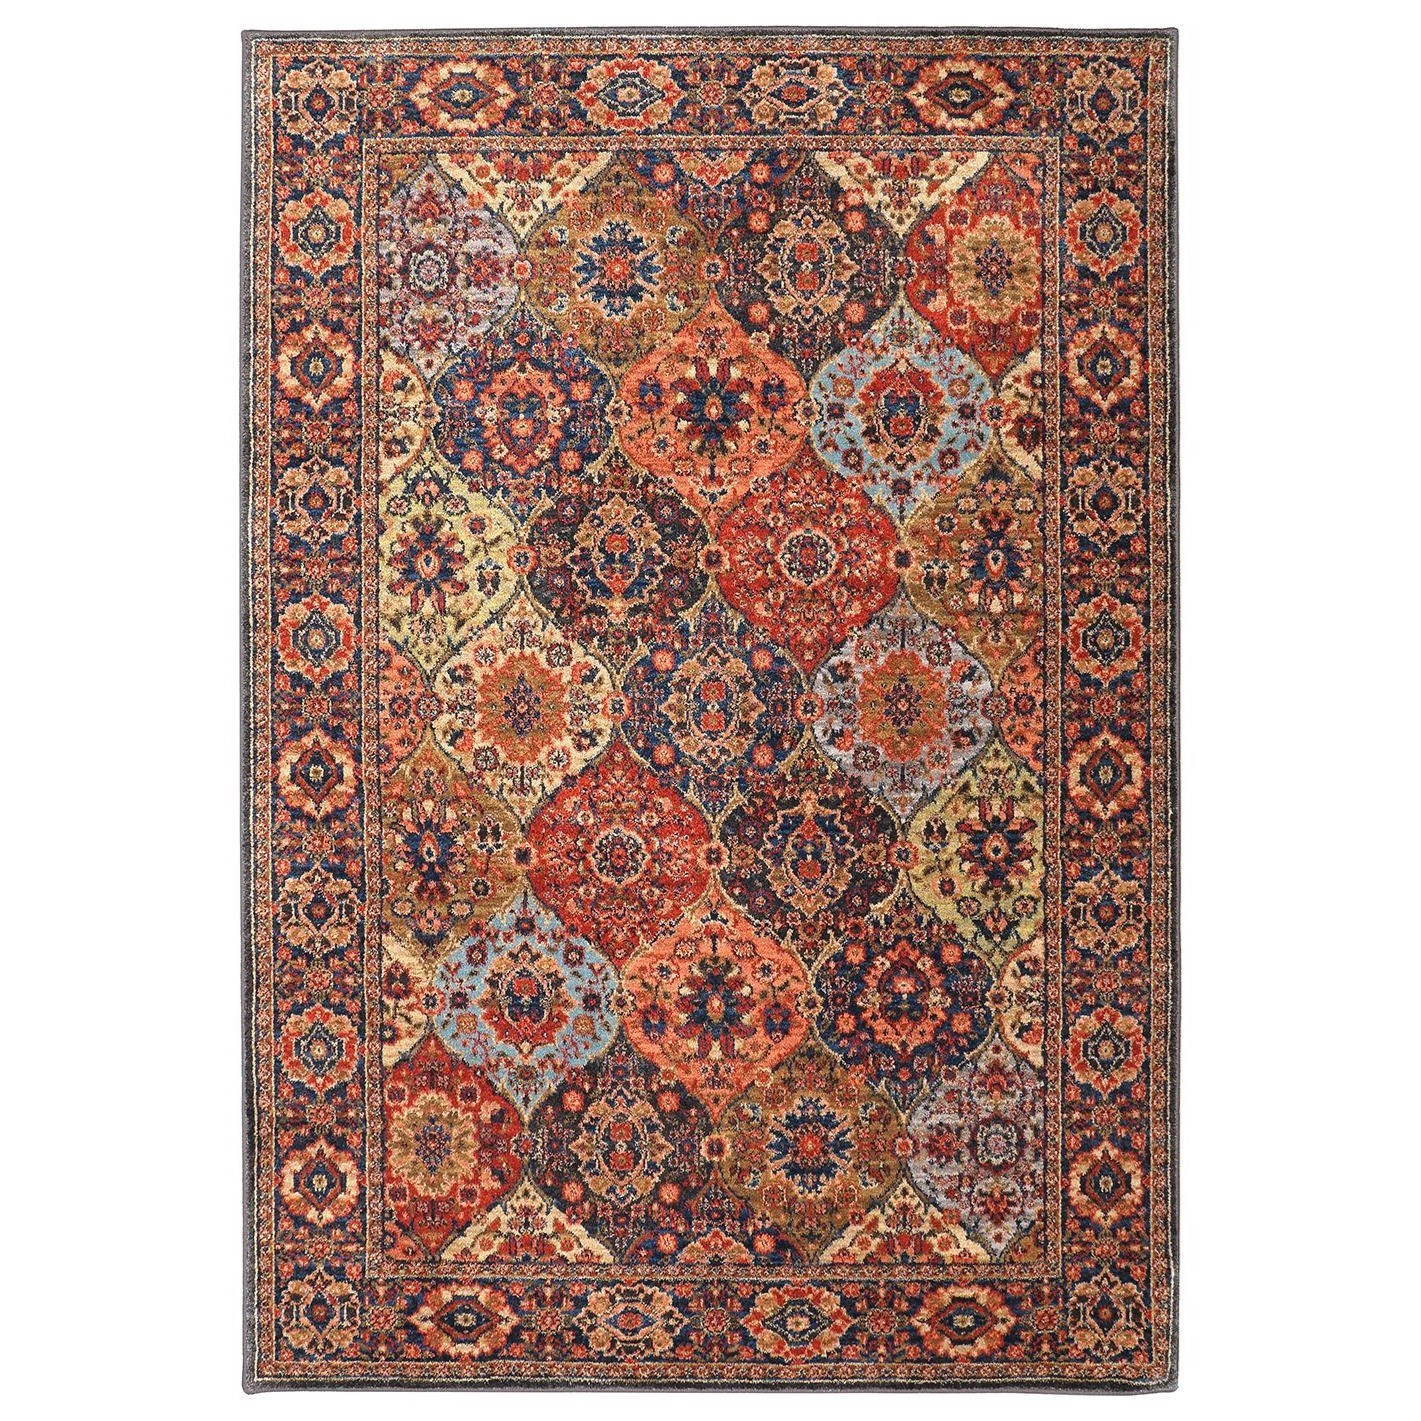 Spice Market 5'3x7'10 Levant Multi Rug by Karastan Rugs at Alison Craig Home Furnishings